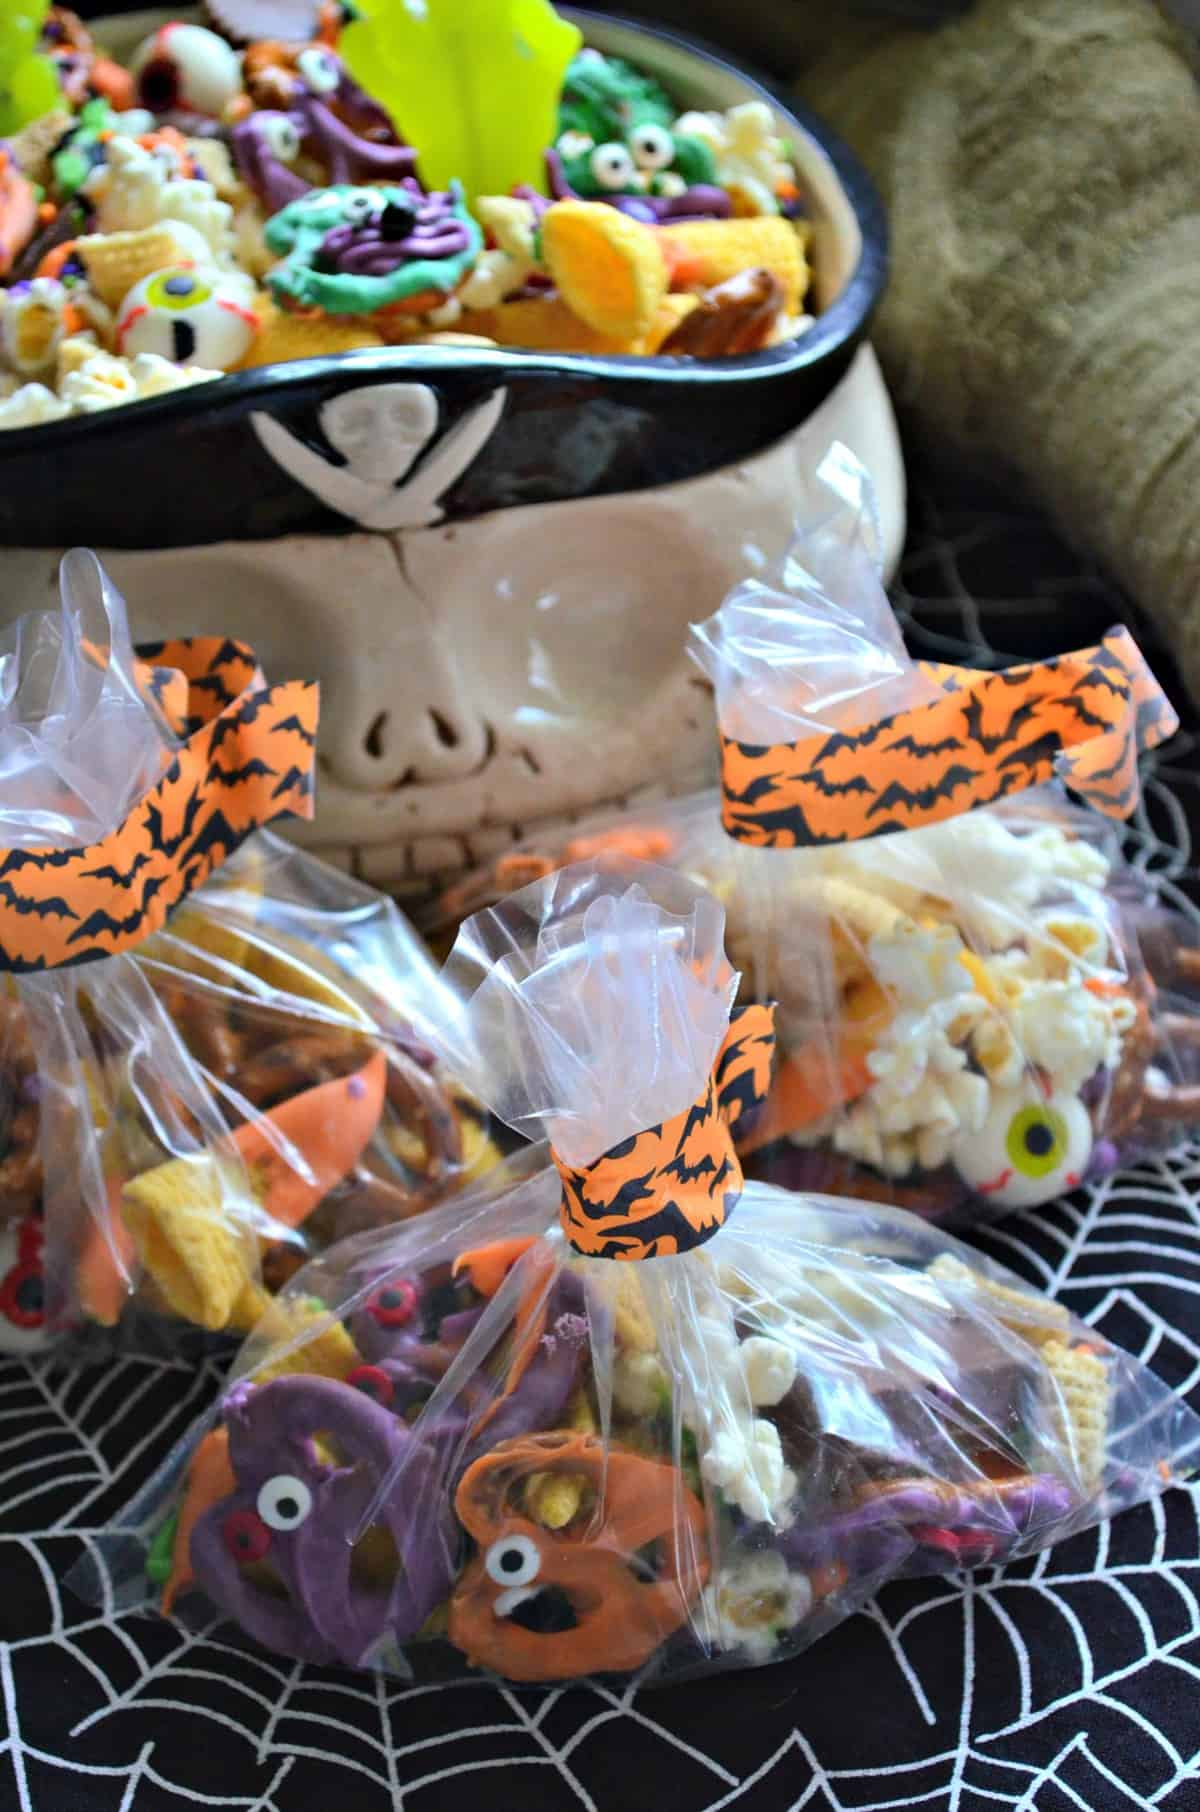 baggies of  snack mix with colorful chocolate dipped pretzels and candy eyes with bowl of snack mix behind.